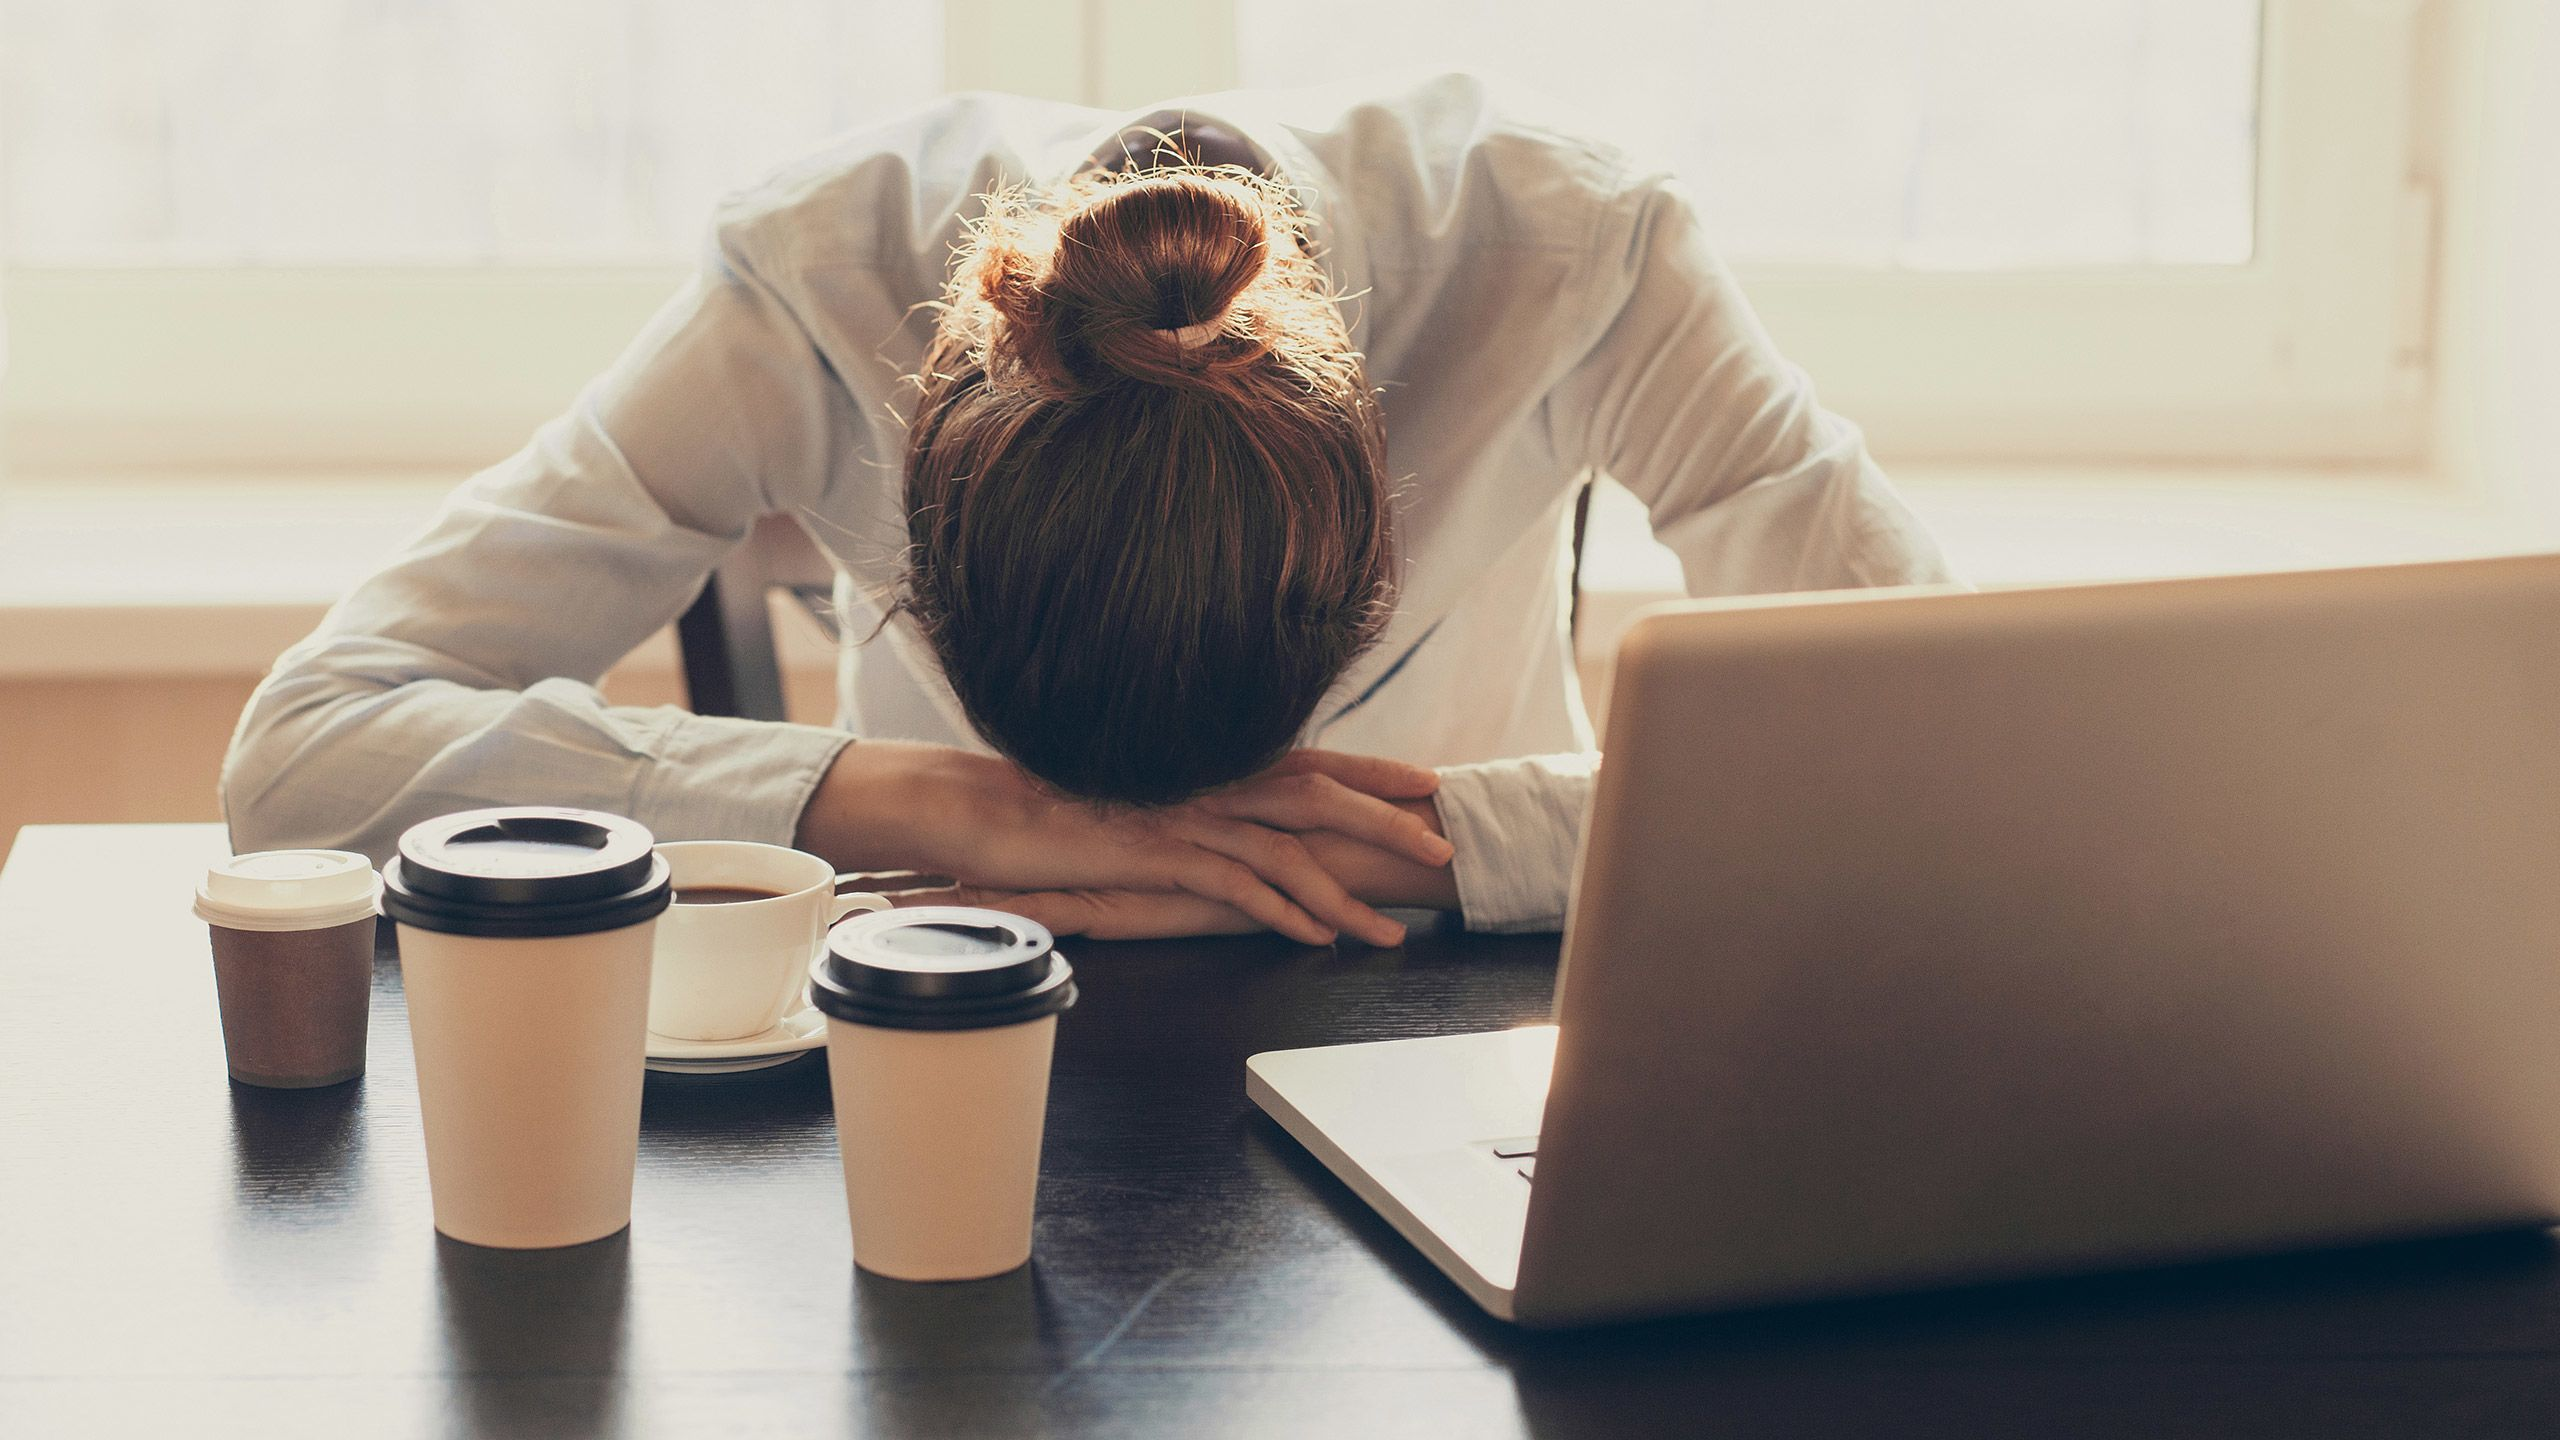 6 Foods That Fight Mid-Afternoon Fatigue